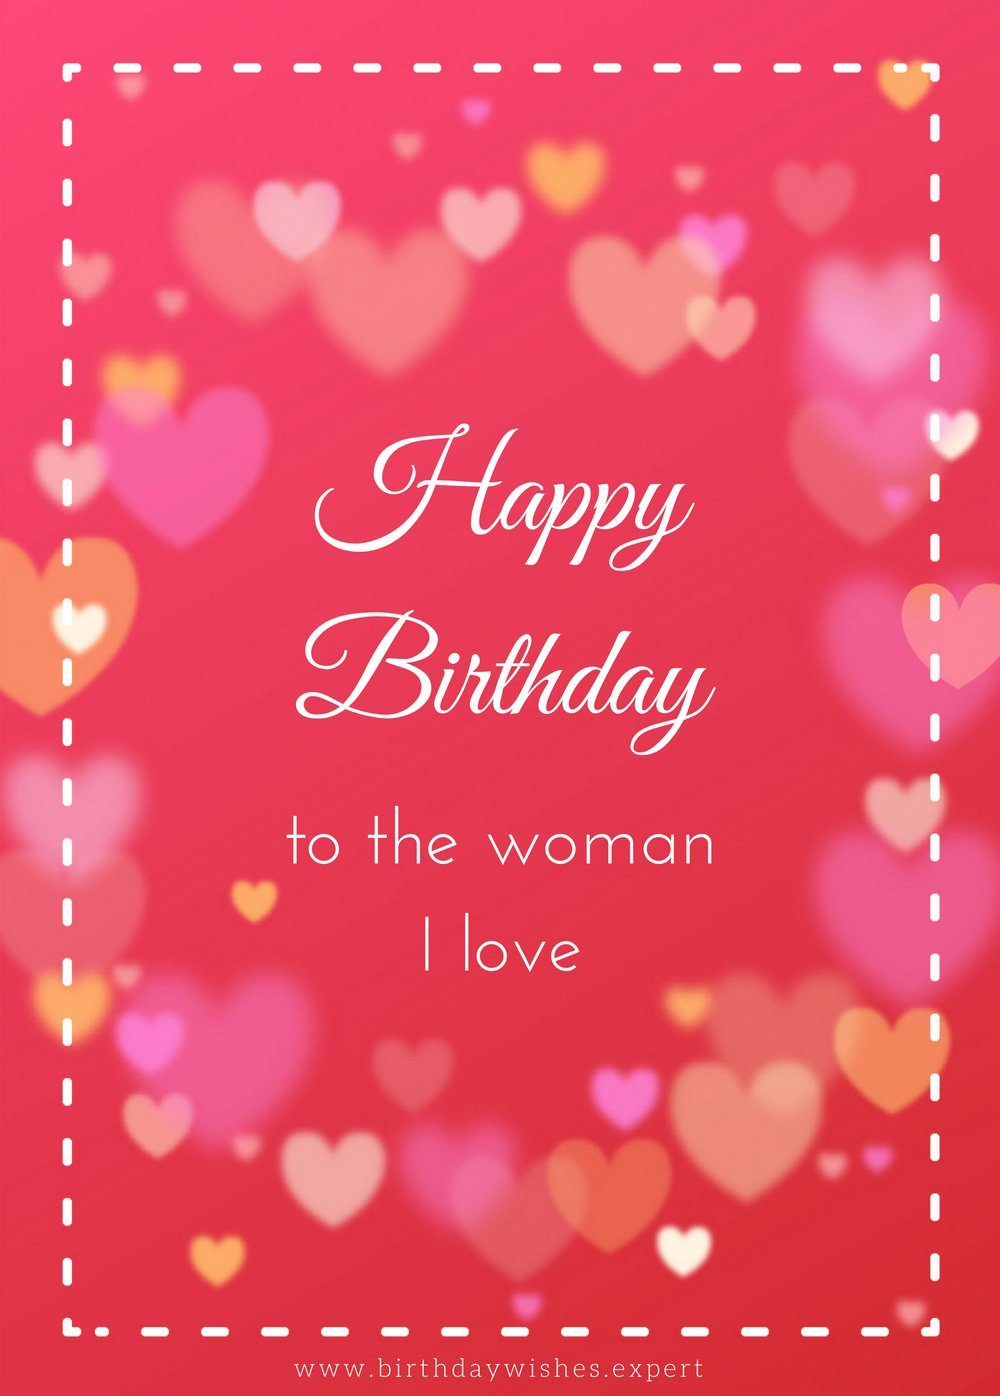 120 birthday wishes your wife would appreciate happy birthday to the woman i love m4hsunfo